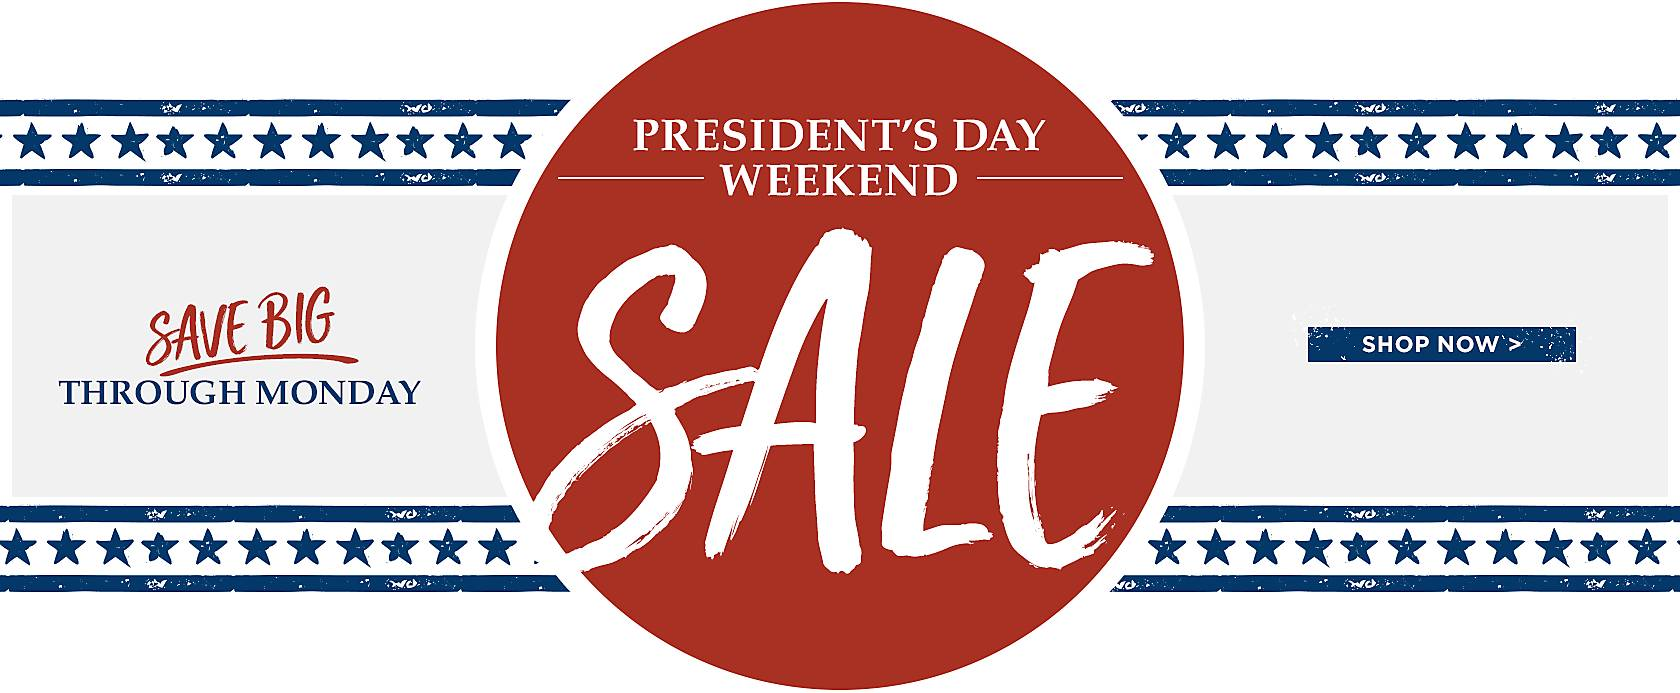 Presidents Day Weekend Sale - Save Big Through Monday - Shop Now